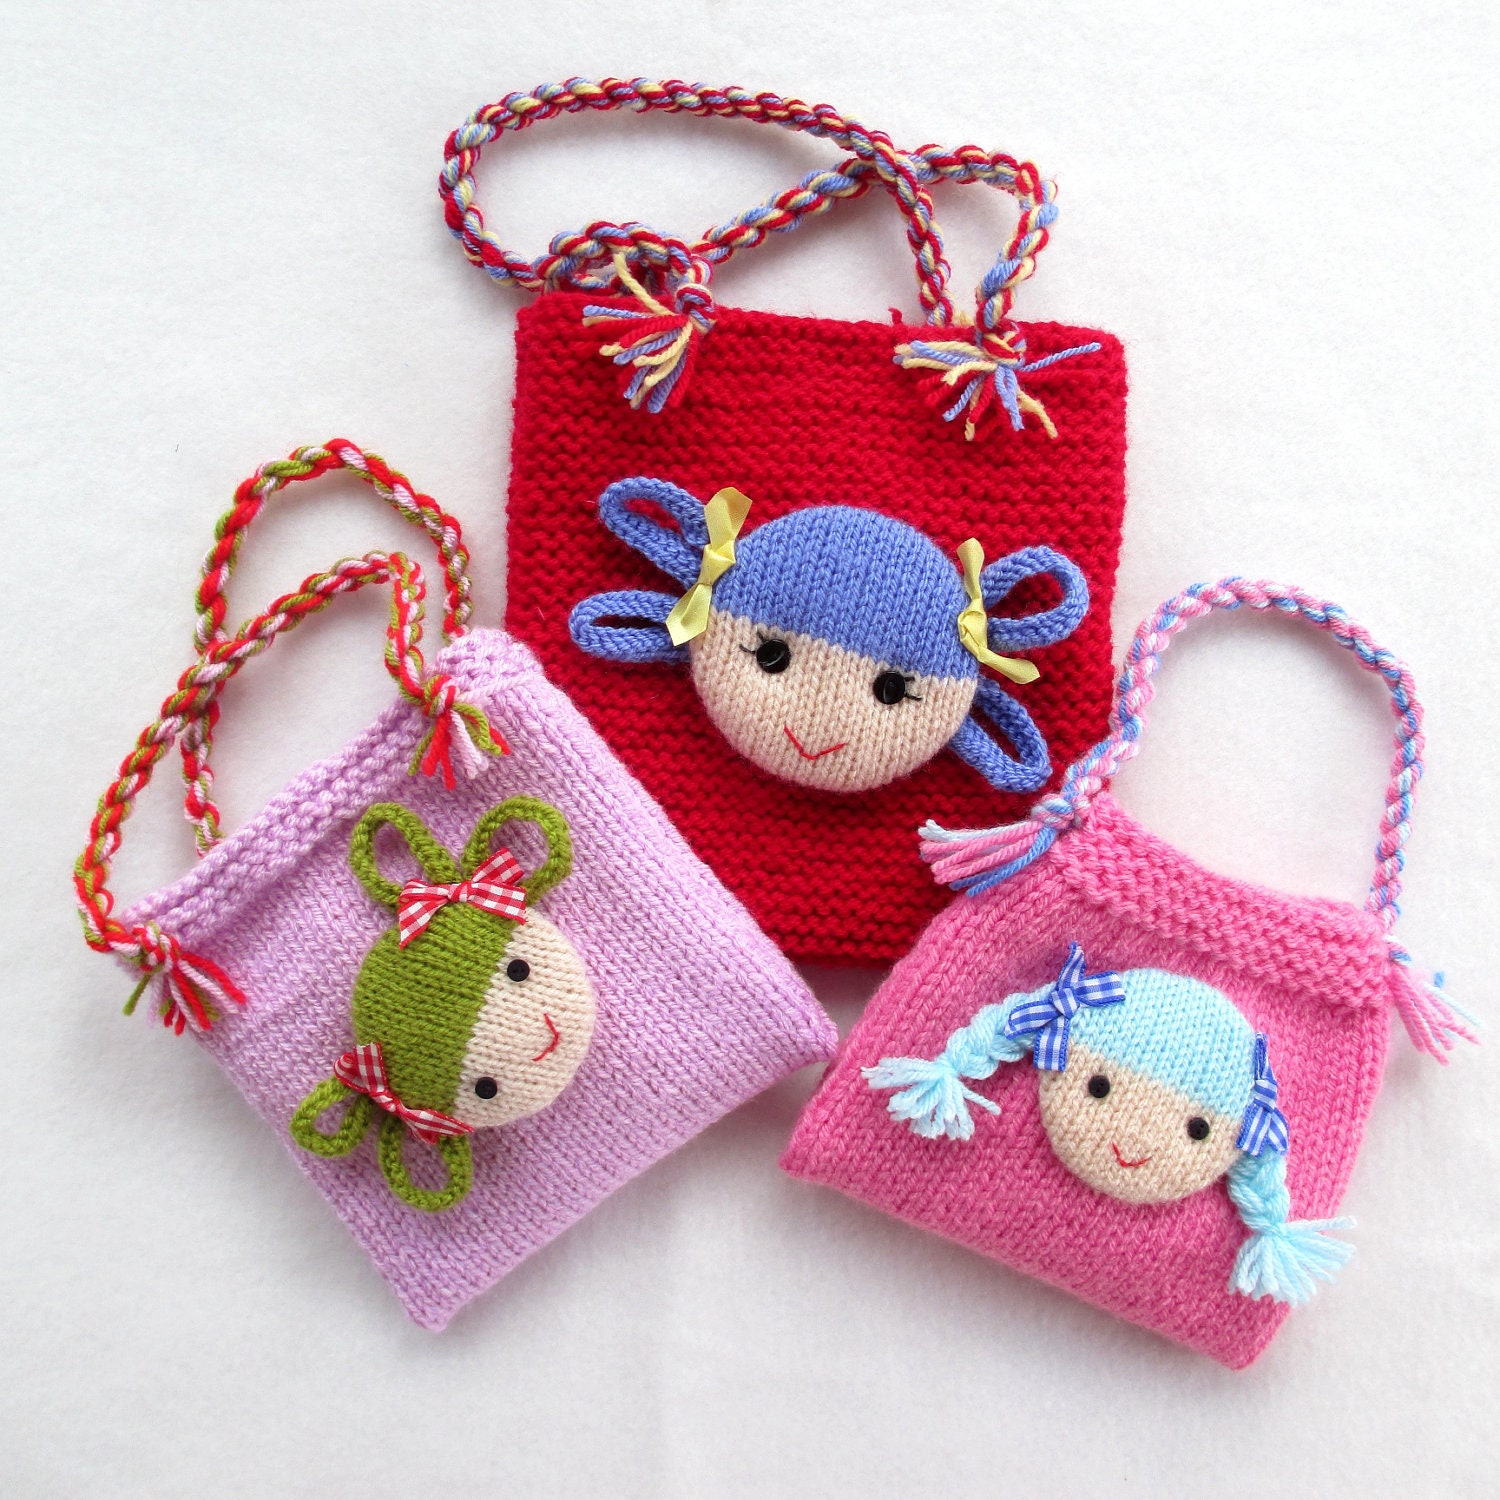 Jolly Dolly Bags knitting patterns INSTANT DOWNLOAD